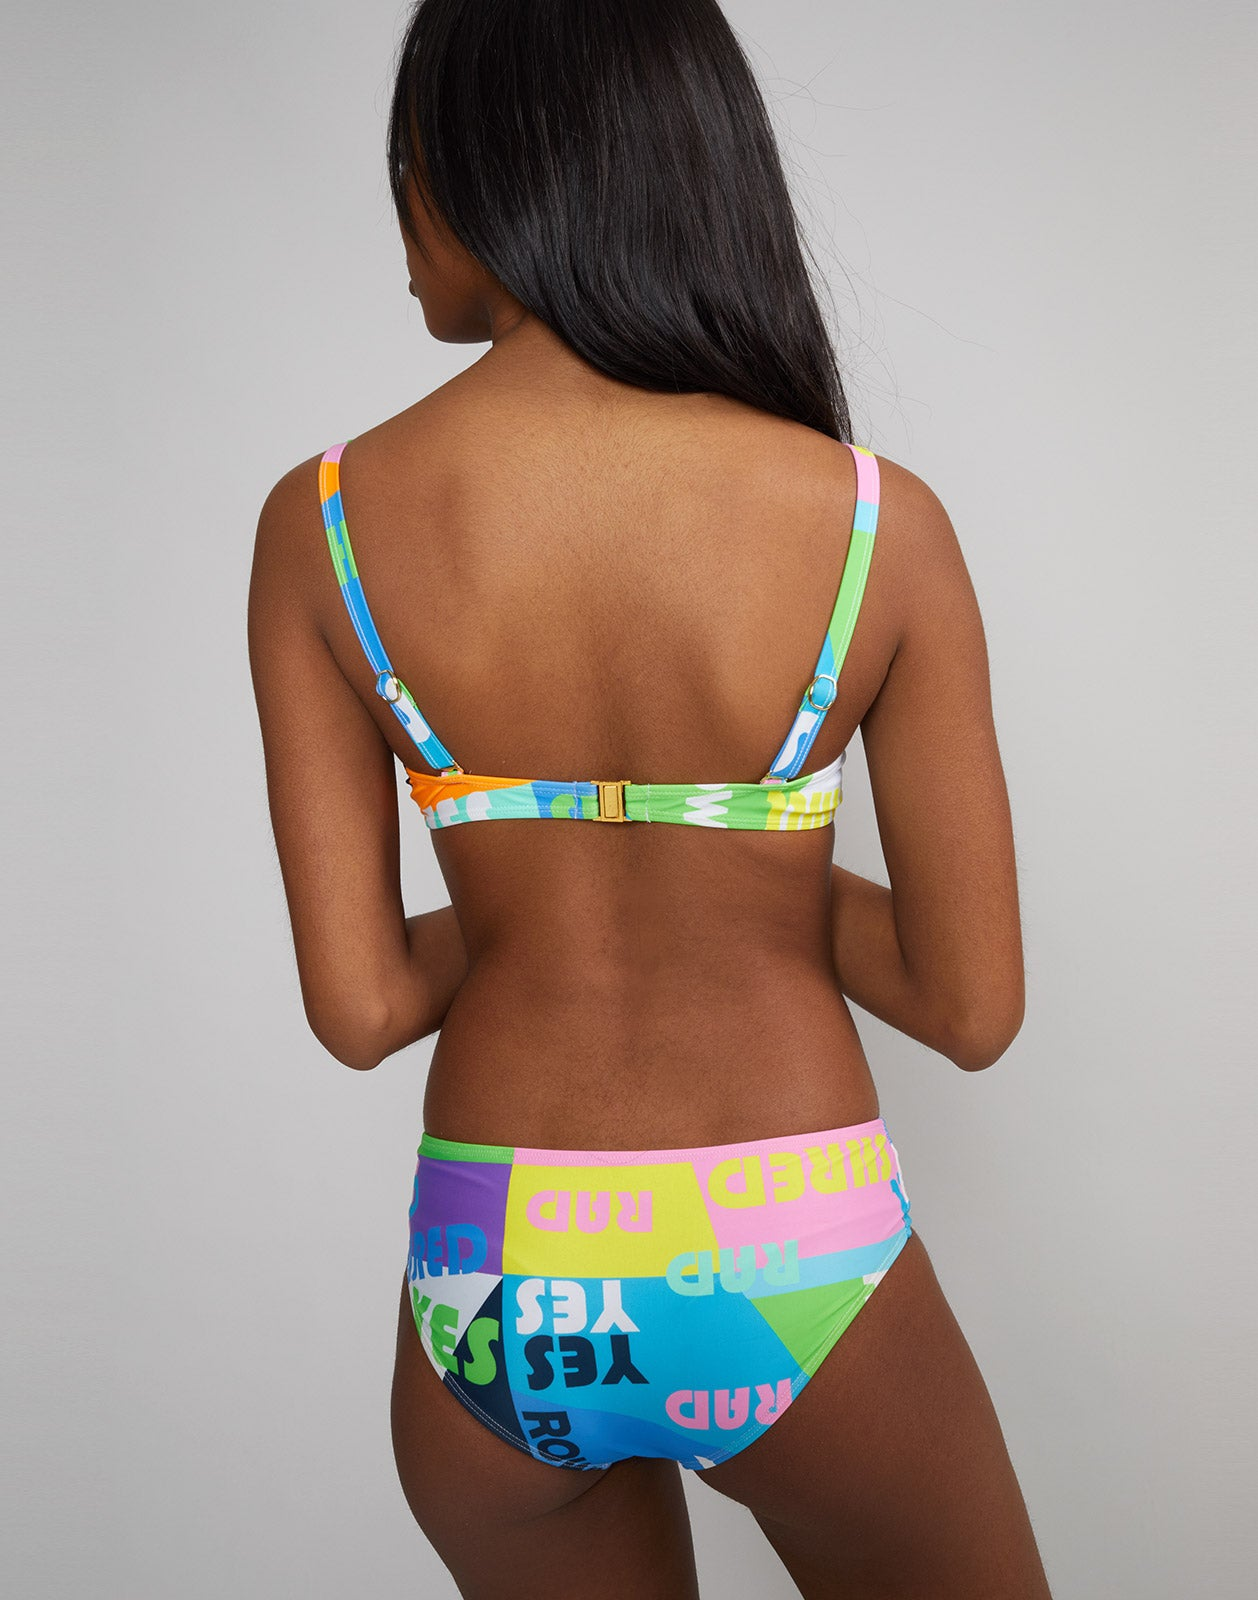 Back view of low rise bikini bottom in good vibes print